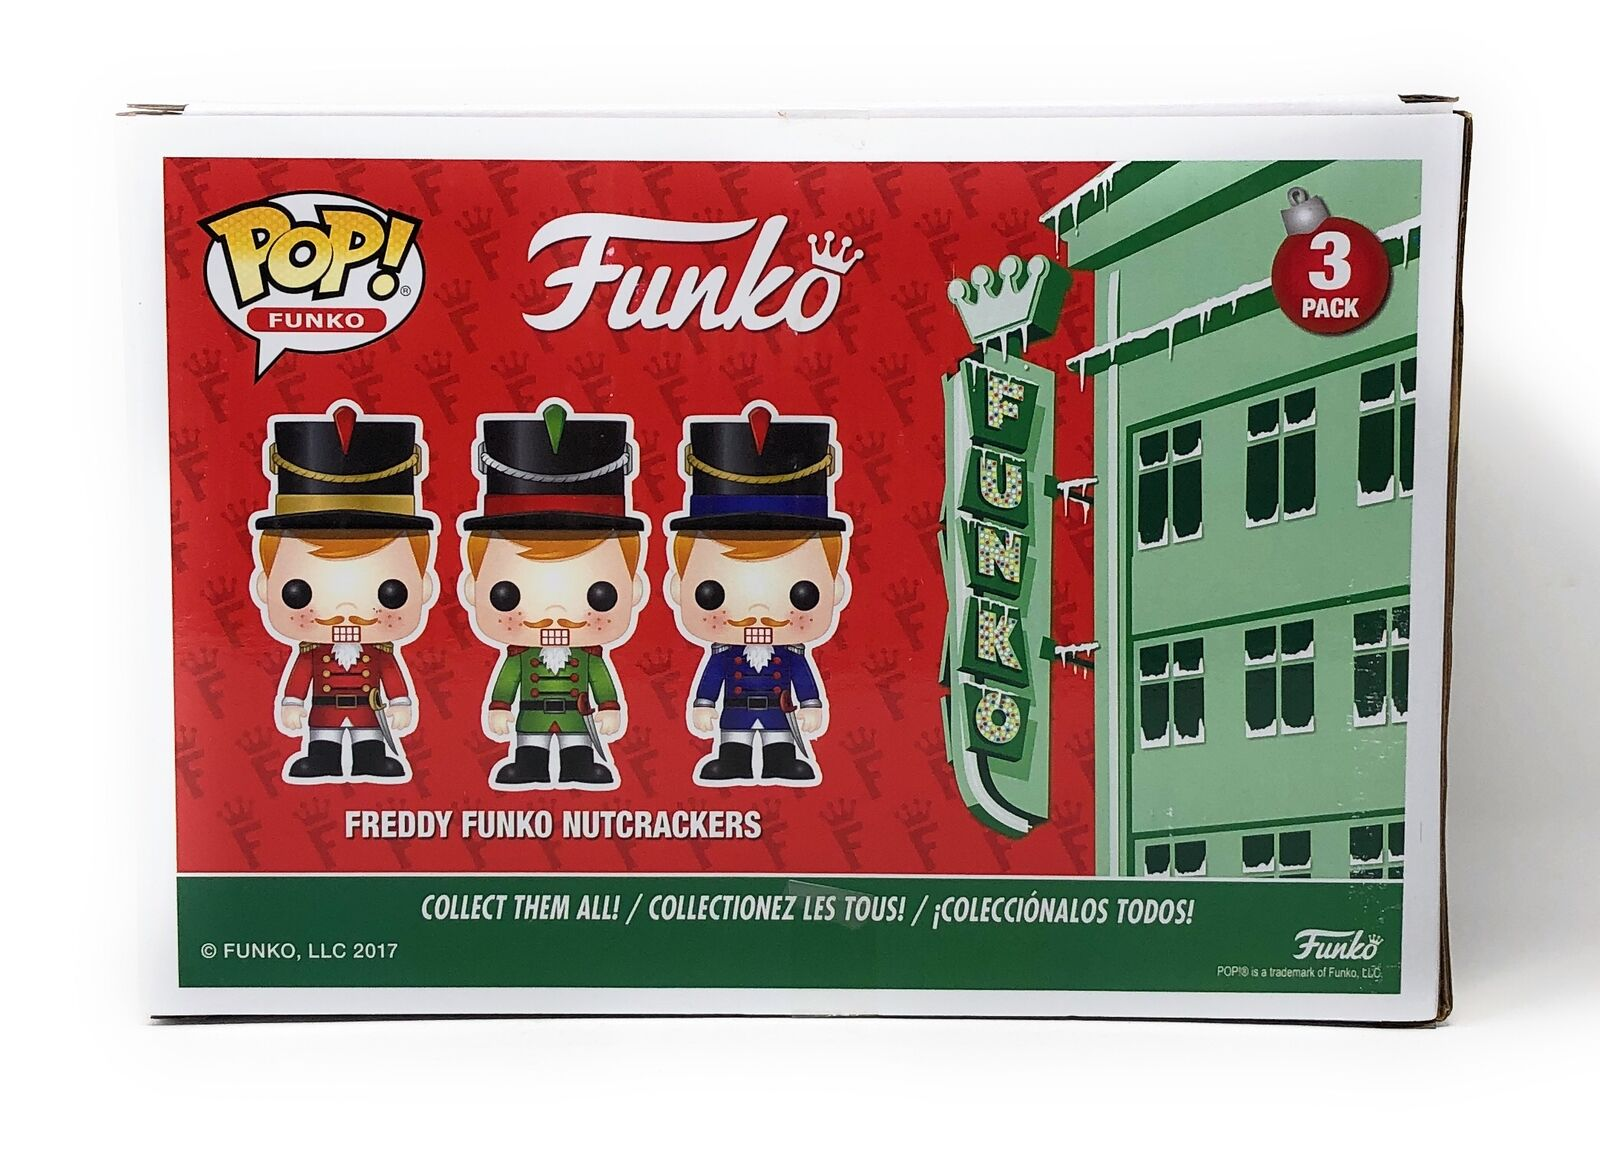 Funko POP! Freddy Funko Nutcrackers 3-Pack - Limited Edition